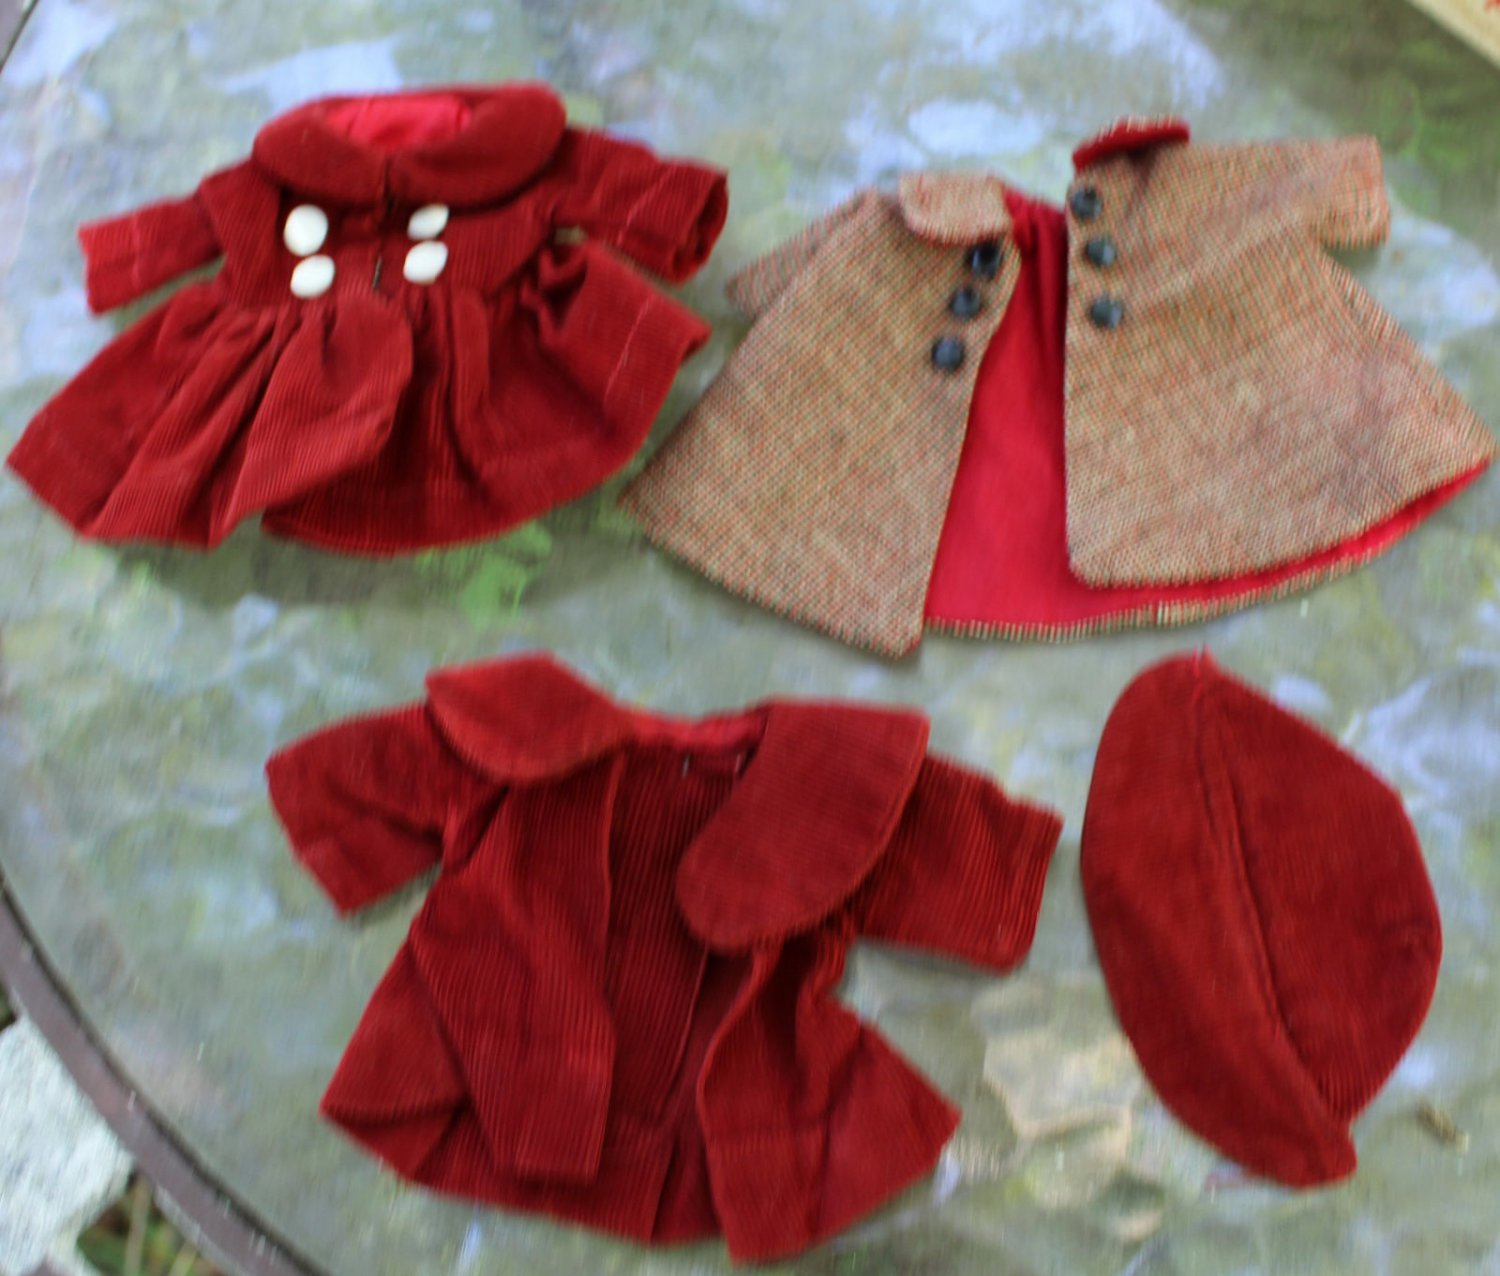 Vintage Doll Clothes 4 Pieces Corduroy Coat Hat Dress Plaid Rust Color Red